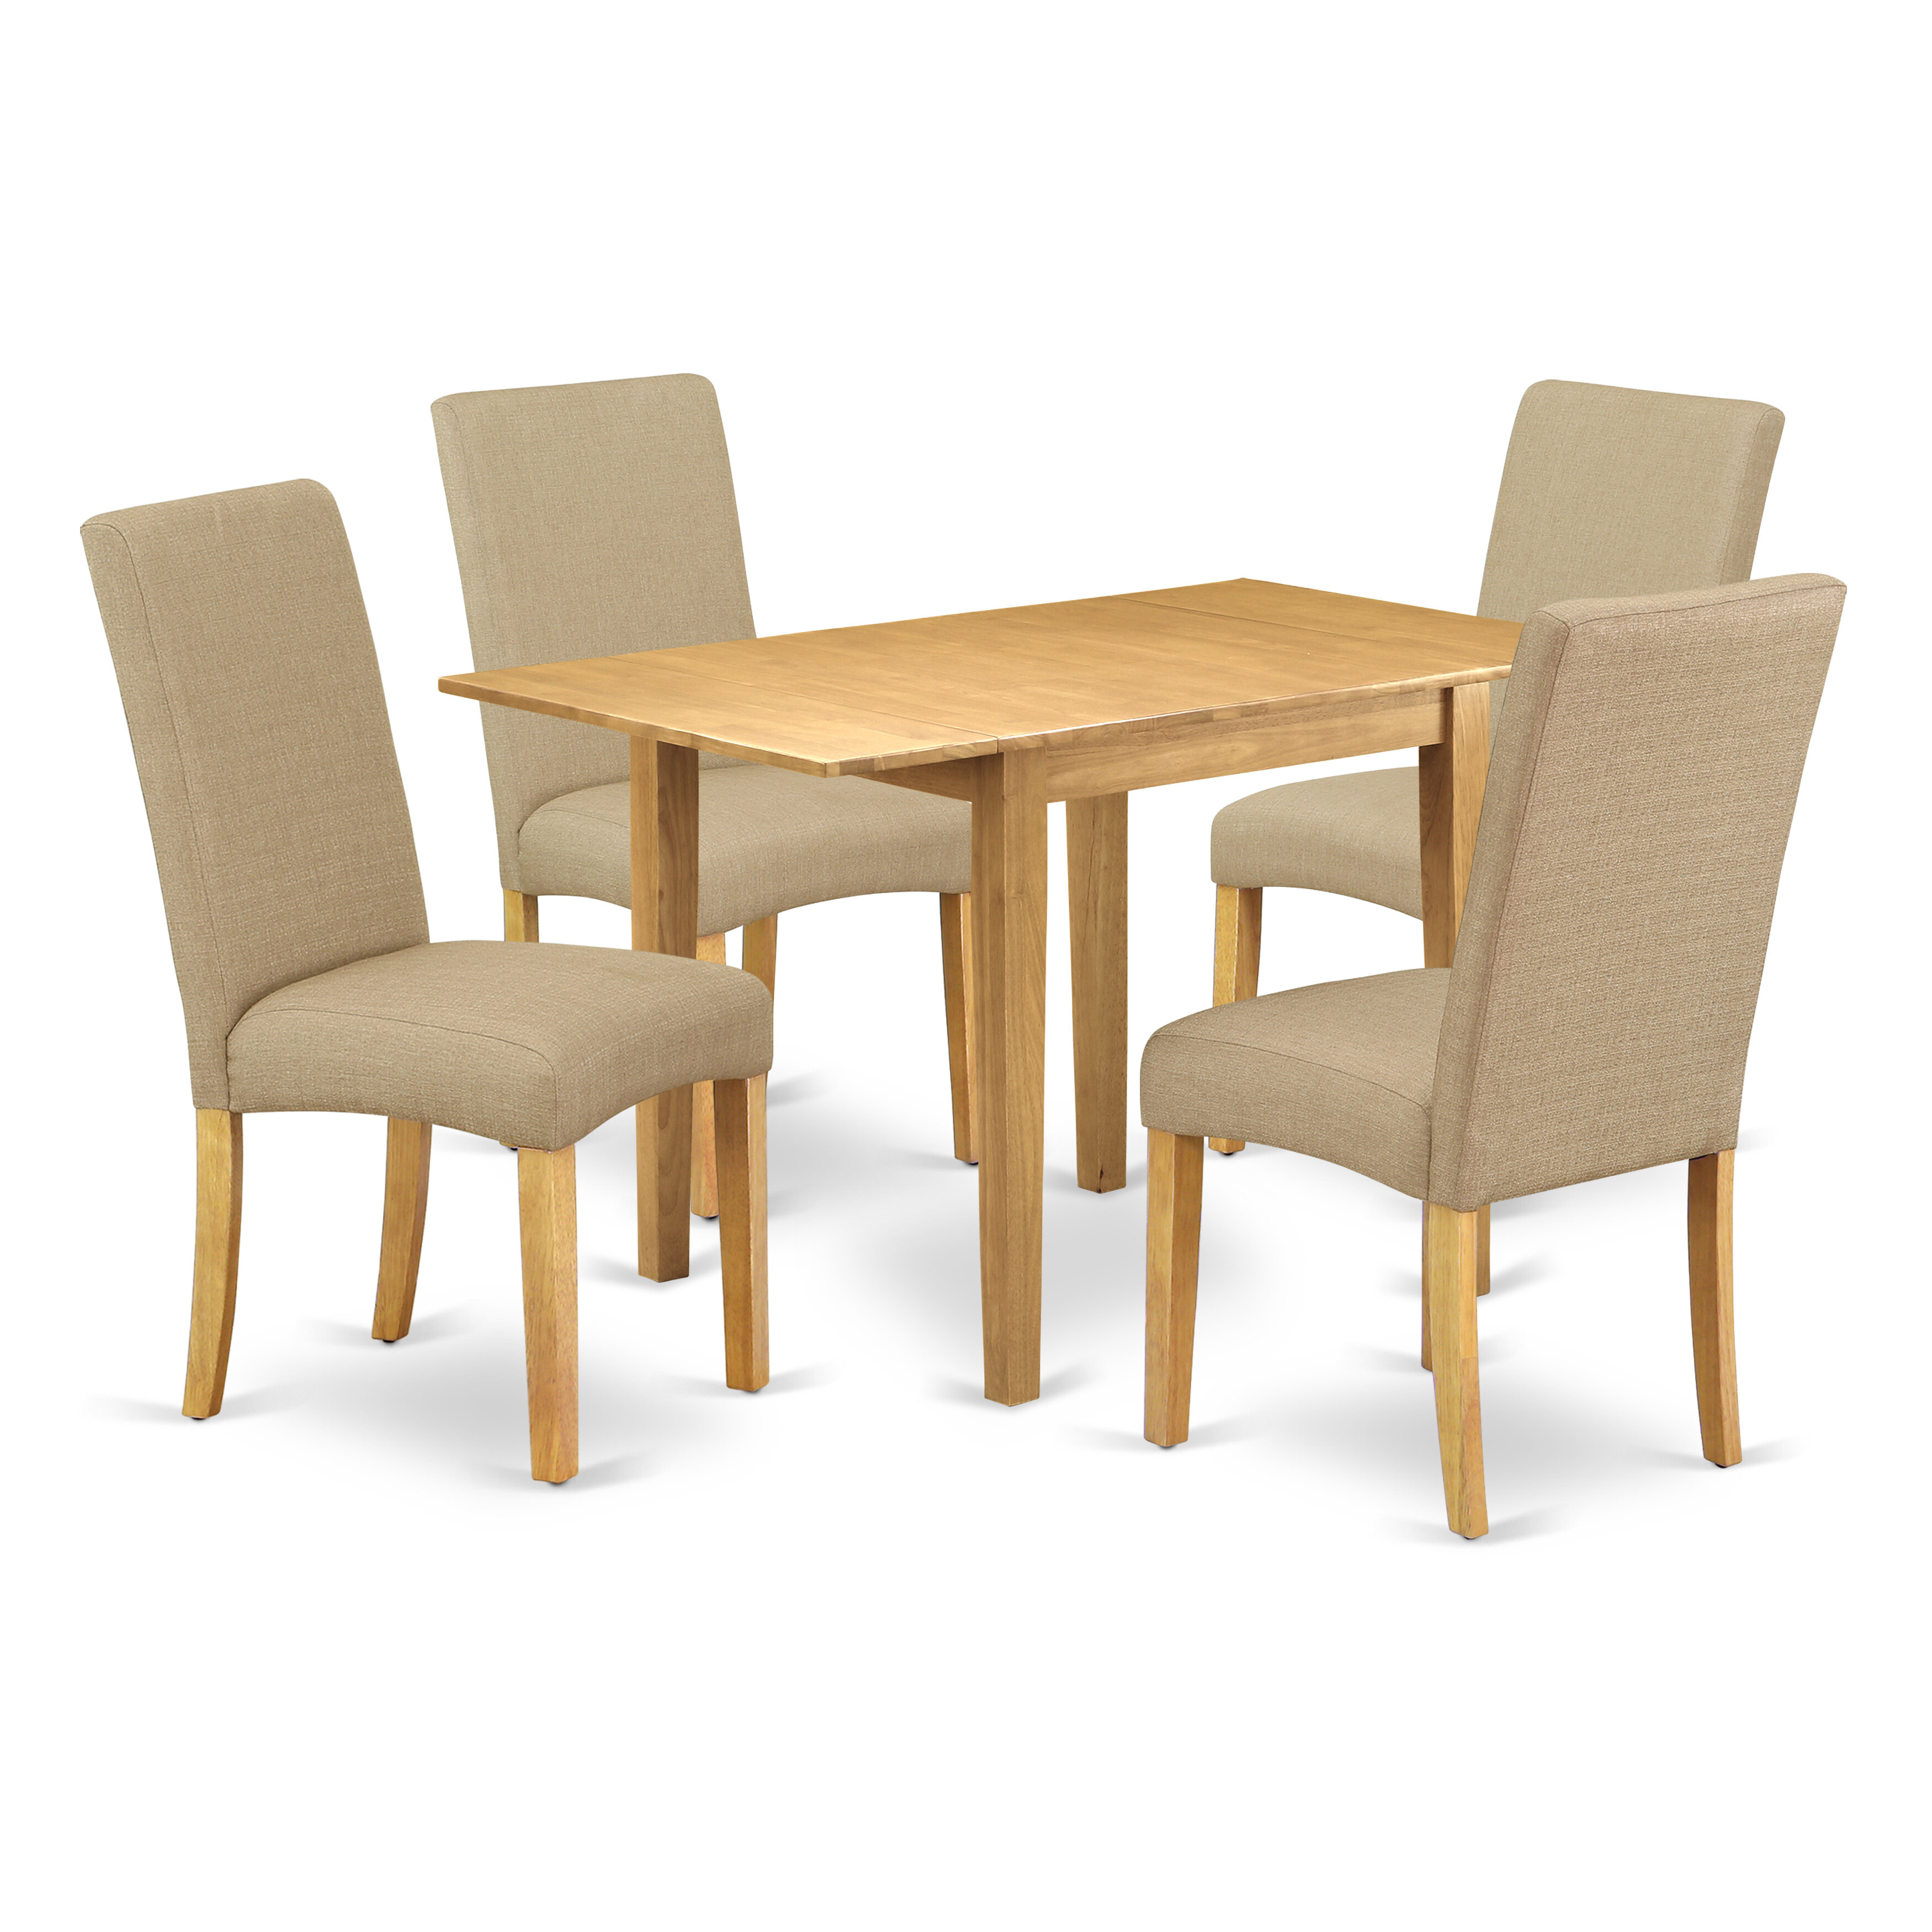 Picture of: Winston Porter Dining Table Set 5 Pcs 4 Dining Room Chairs And A Dinner Table Linen White Finish Solid Wood Grey Colour Linen Fabric